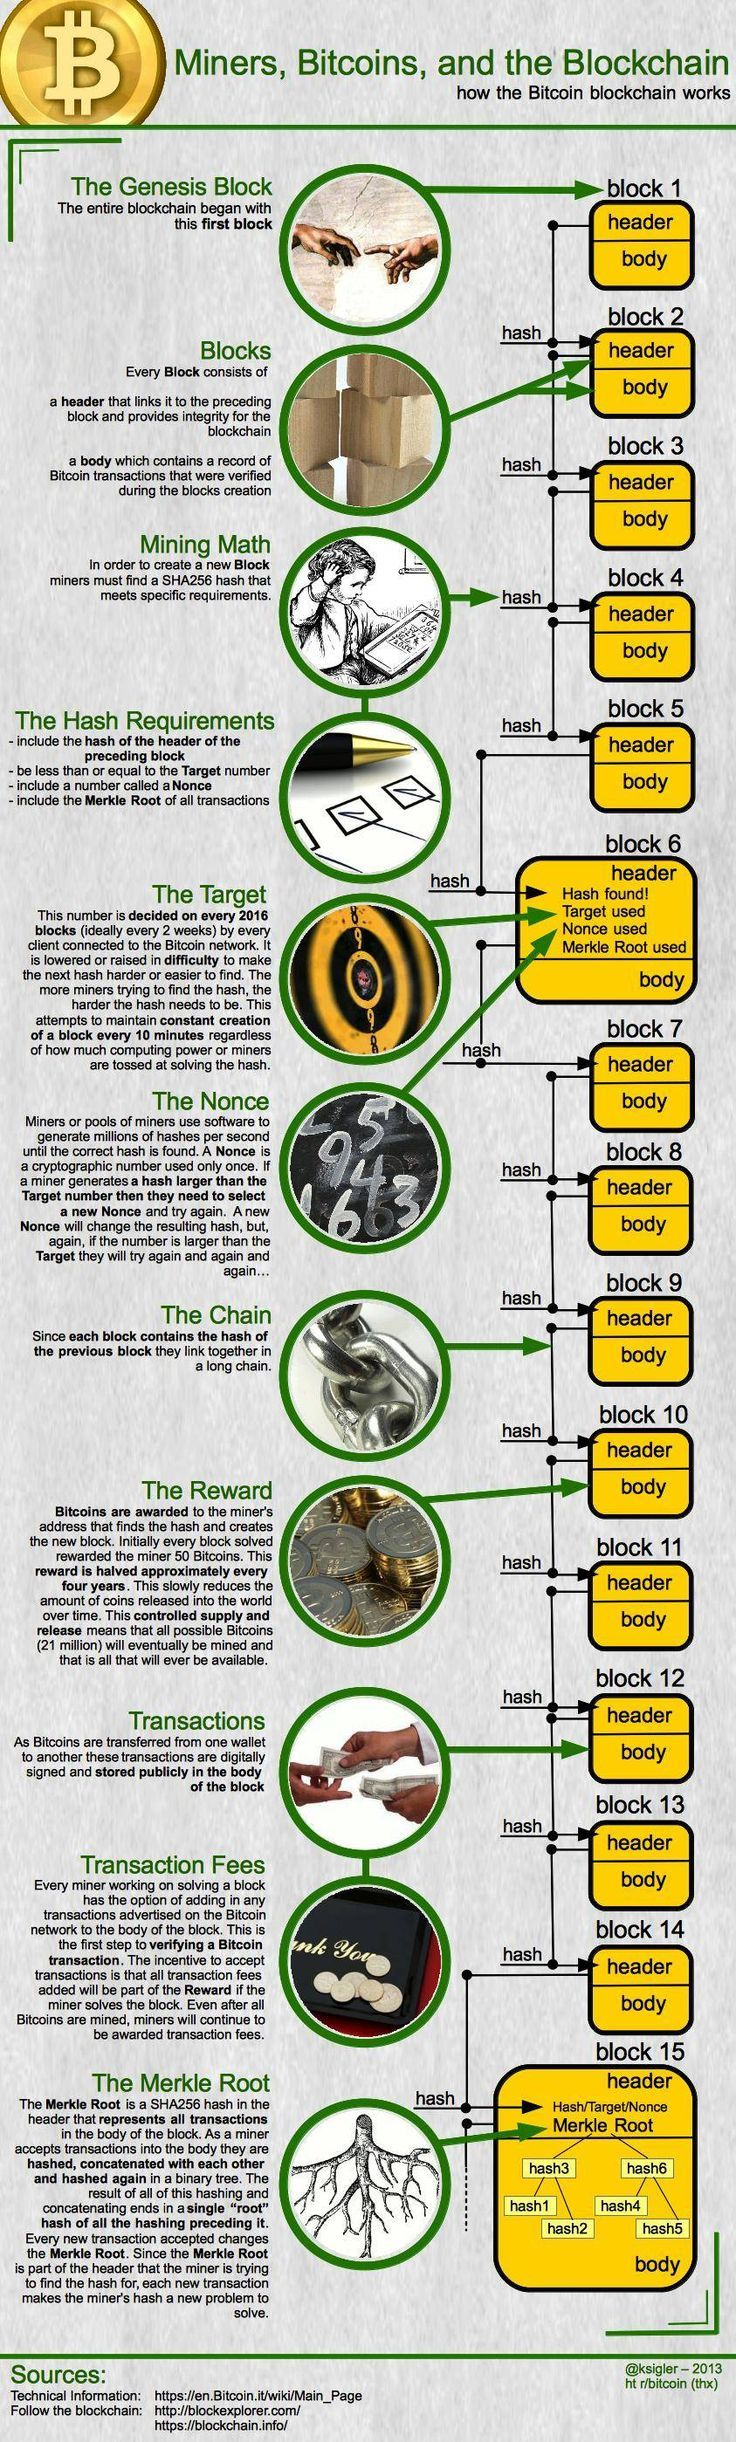 Minters, Bitcoins, and the Blockchain - how the Bitcoin blockchain works. #bitcoin #cbtnuggets #infographic